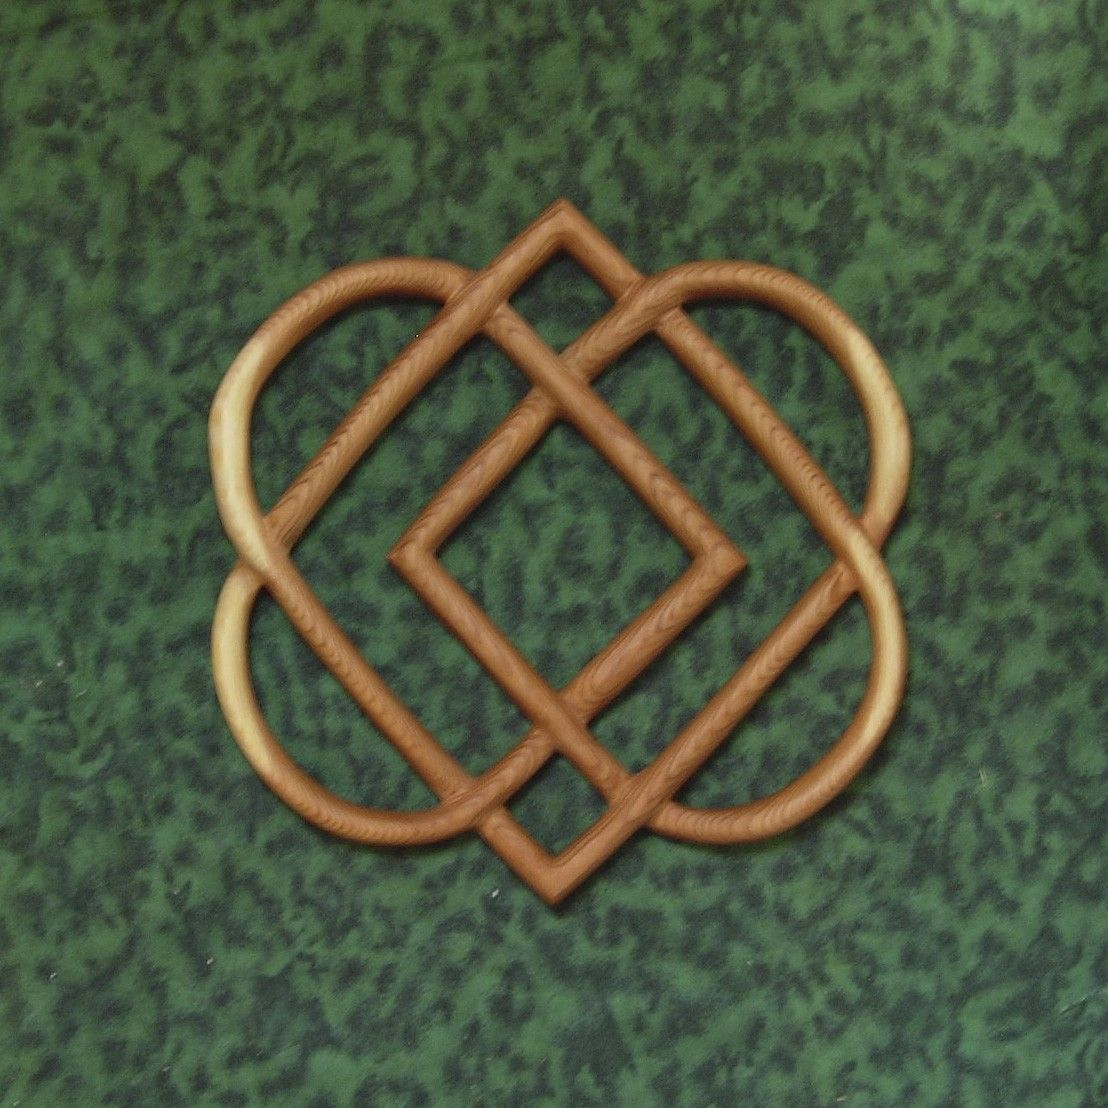 Knot of four hearts celtic wood carving family love knot meaning knot of four hearts celtic wood carving family love knot meaning here are buycottarizona Images